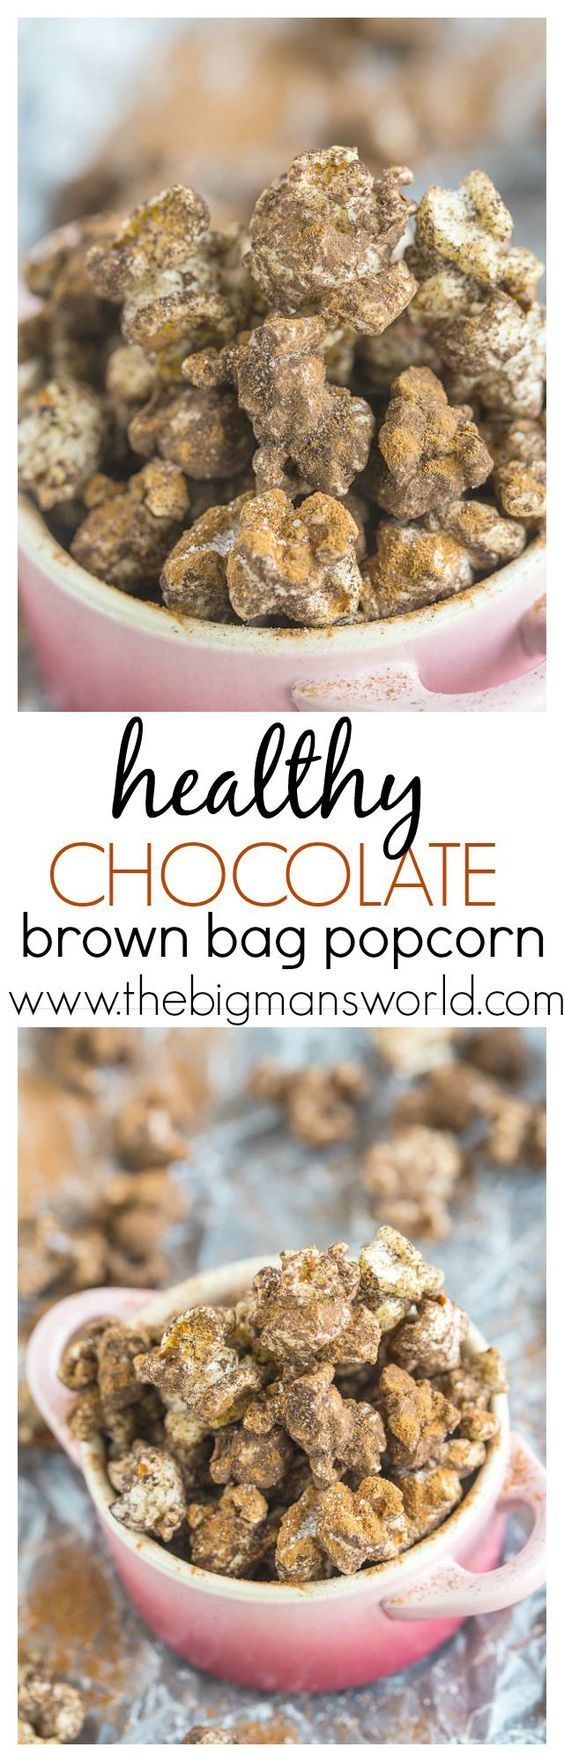 Healthy Chocolate Brown Bag Popcorn- How can popcorn this good, be healthy?  You won't believe how we do it!